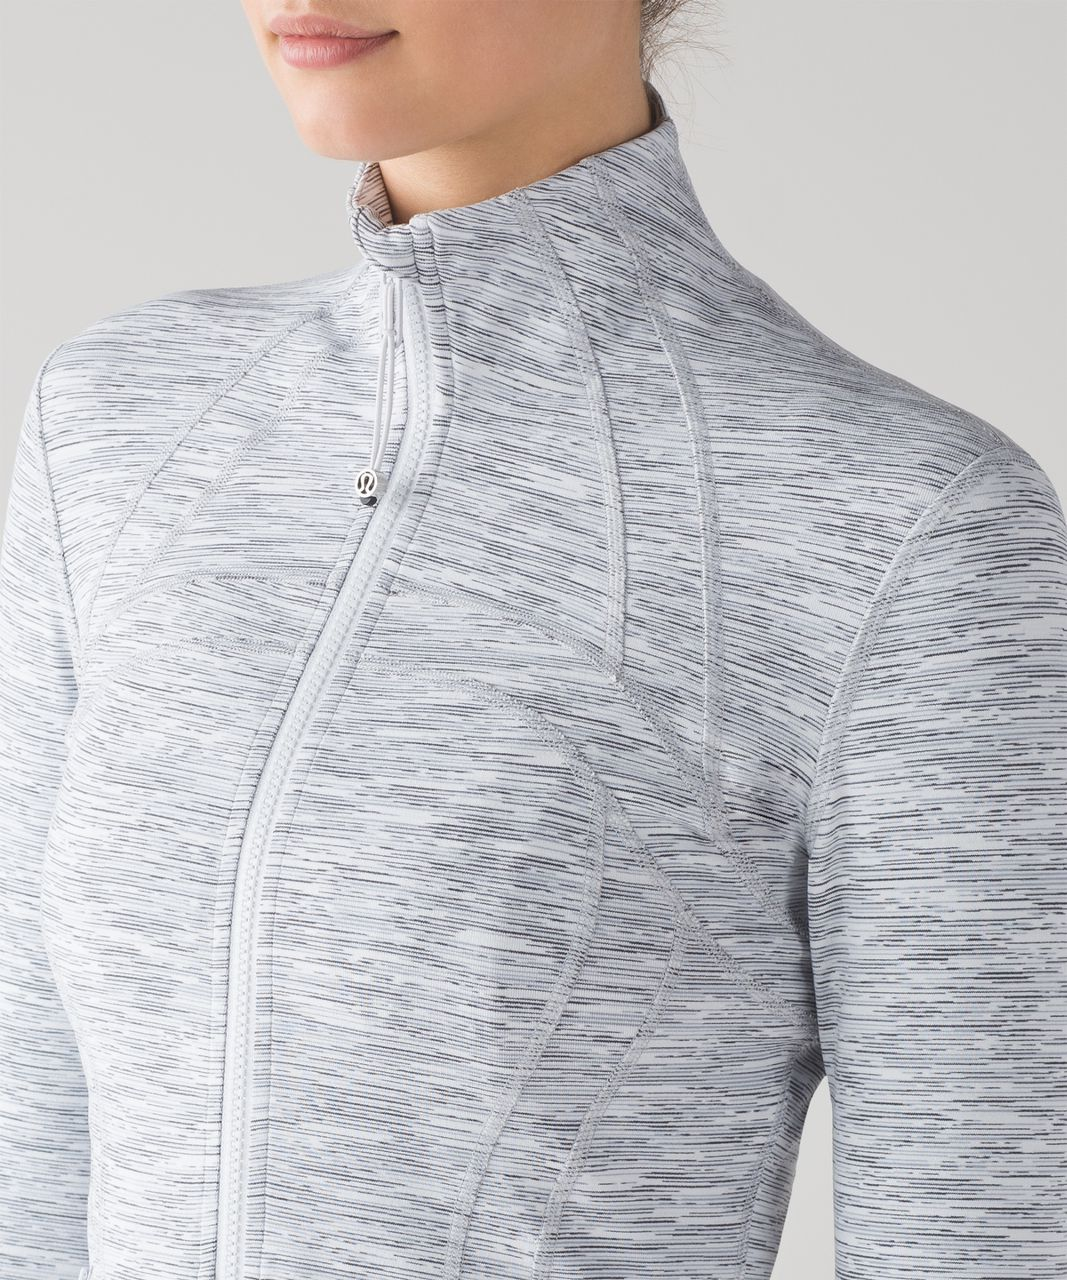 Lululemon Define Jacket - Wee Are From Space Ice Grey Alpine White